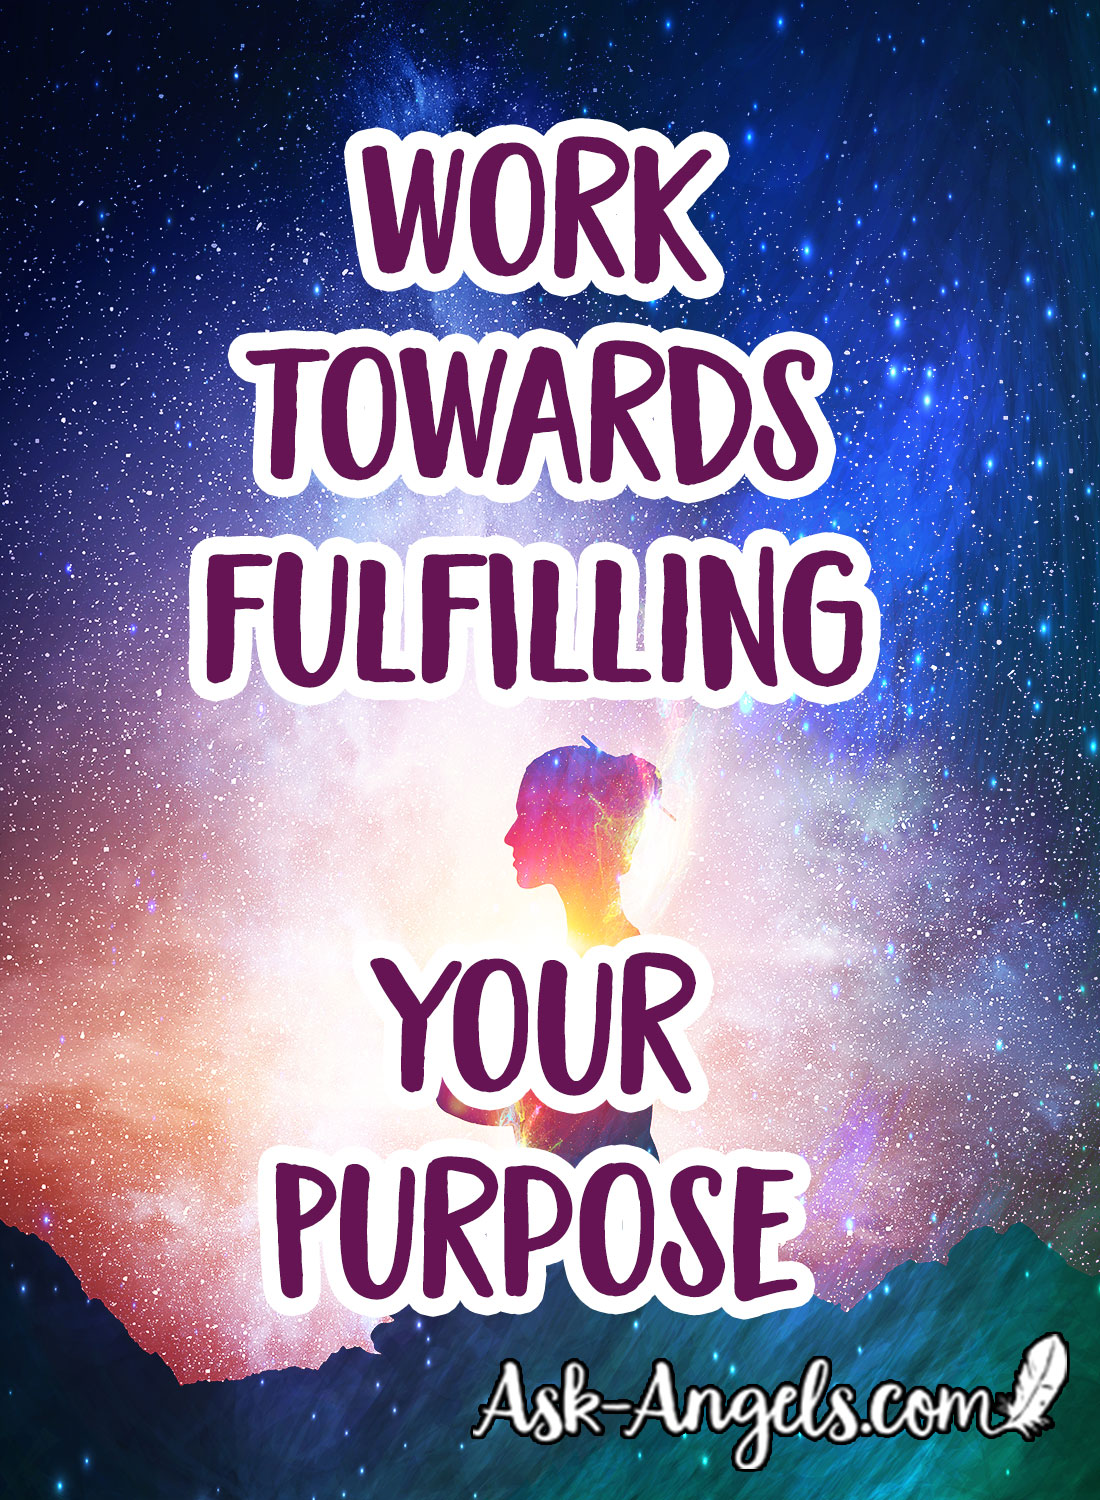 work towards fulfilling your purpose